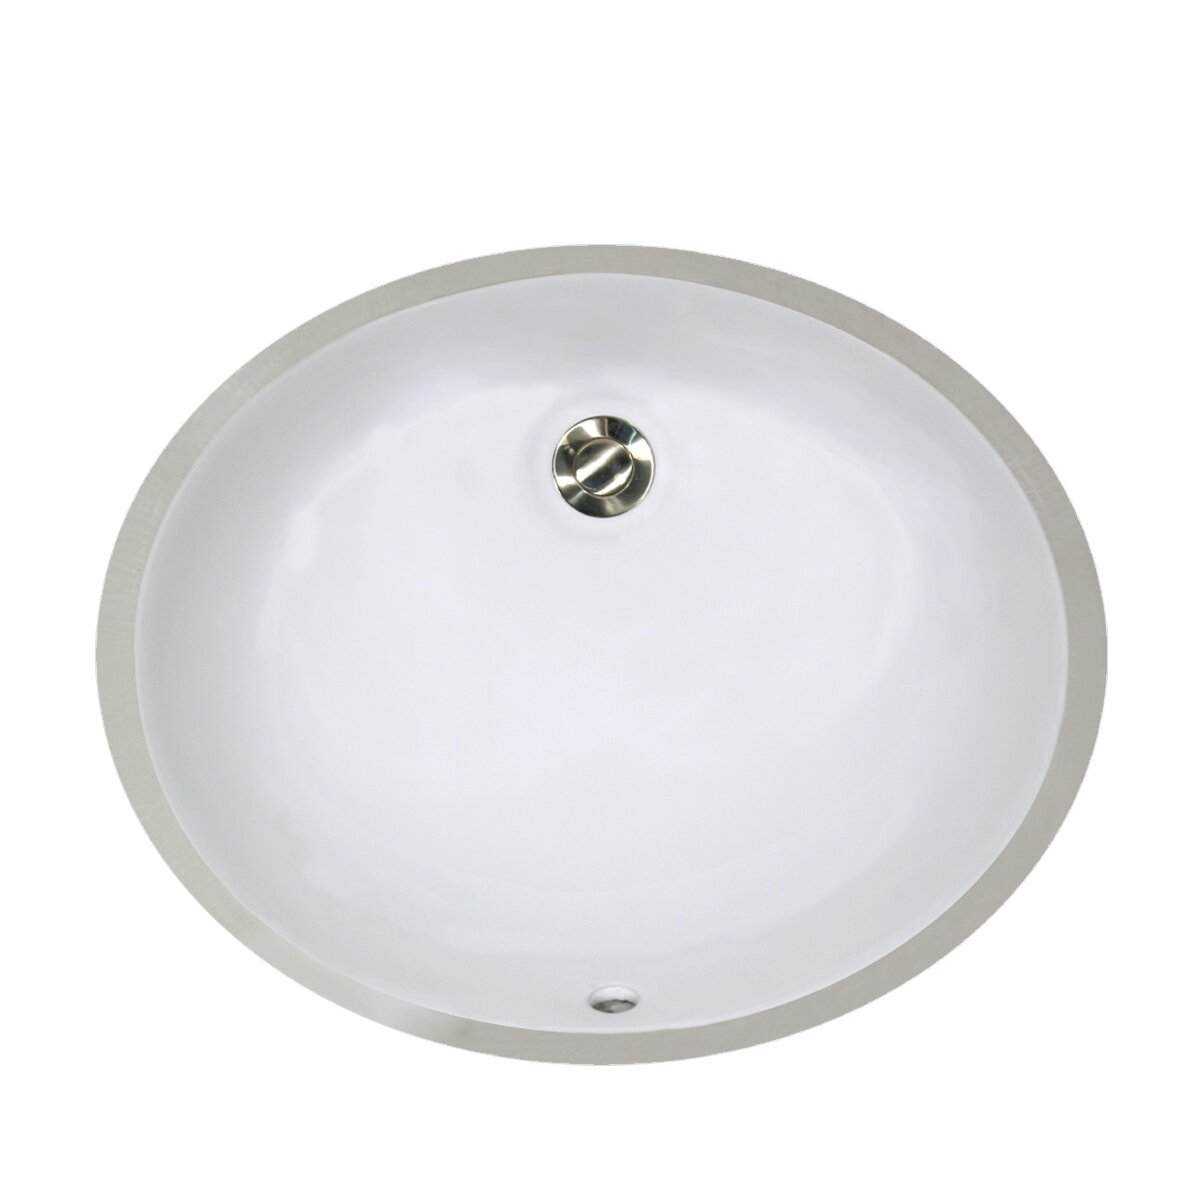 Nantucket Sinks Oval Undercounter Bathroom Sink with